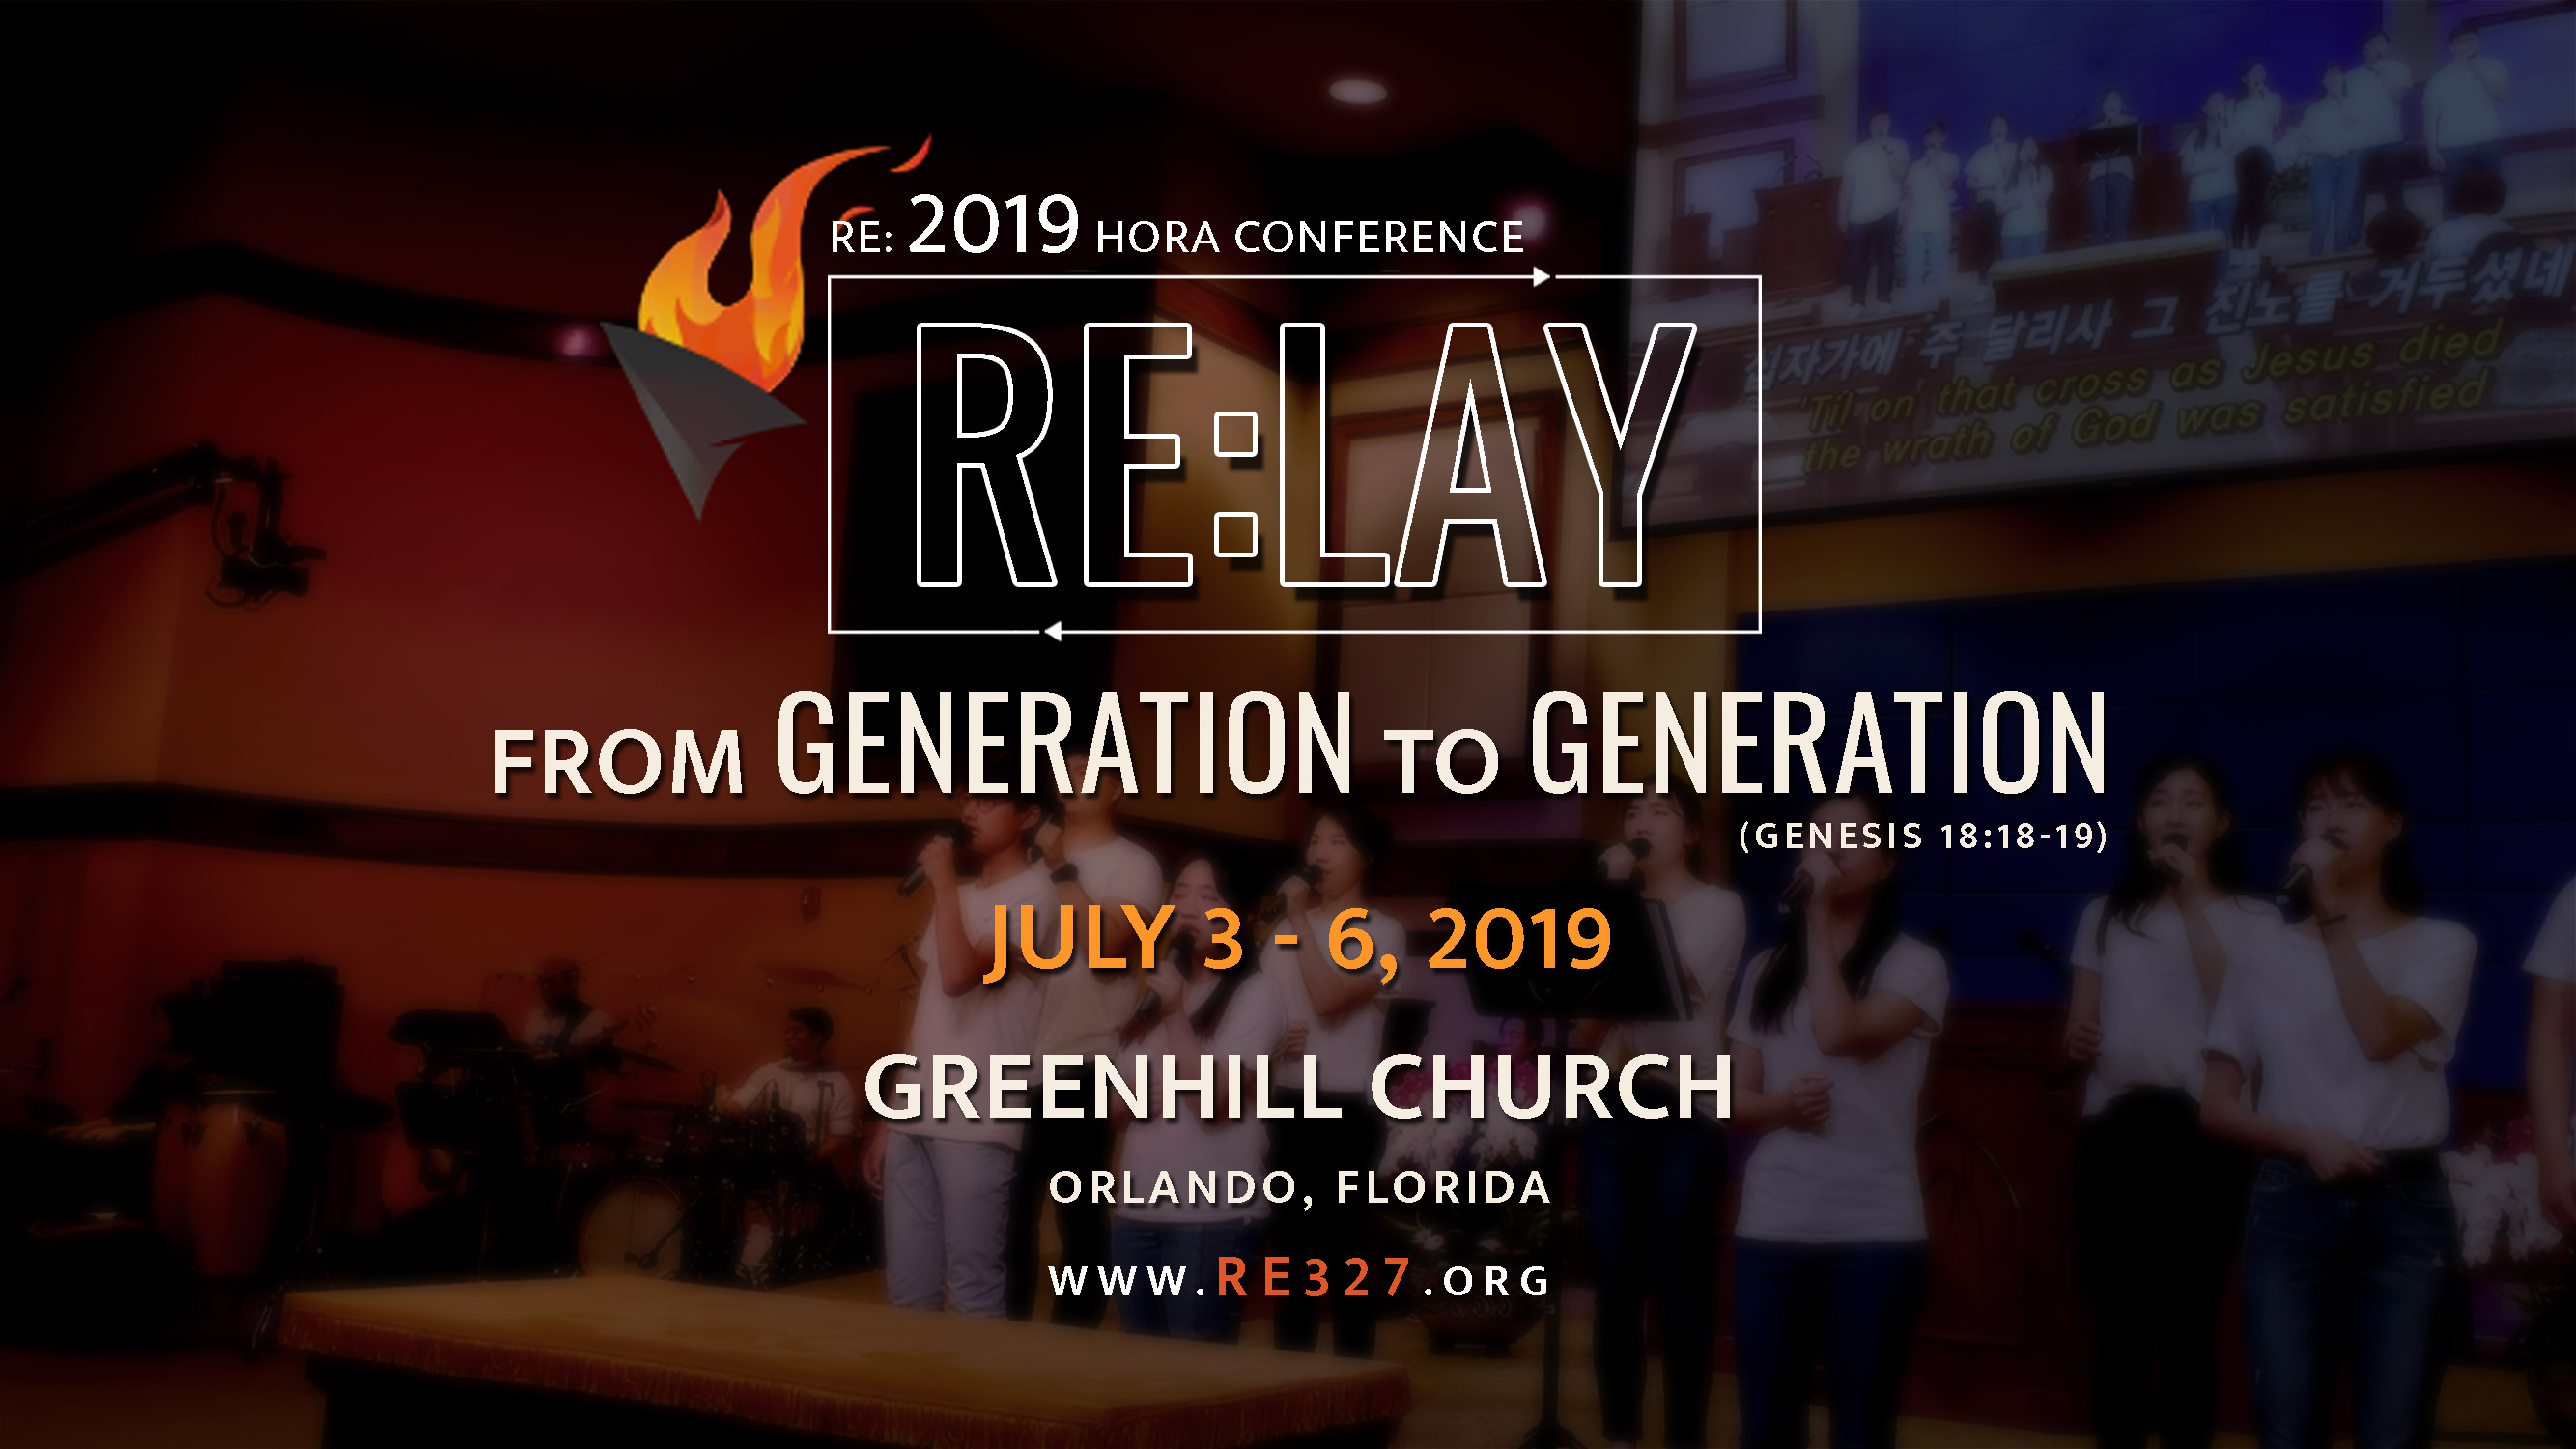 RE:2019 HORA Conference – Green Hill Presbyterian Church – 푸른동산교회